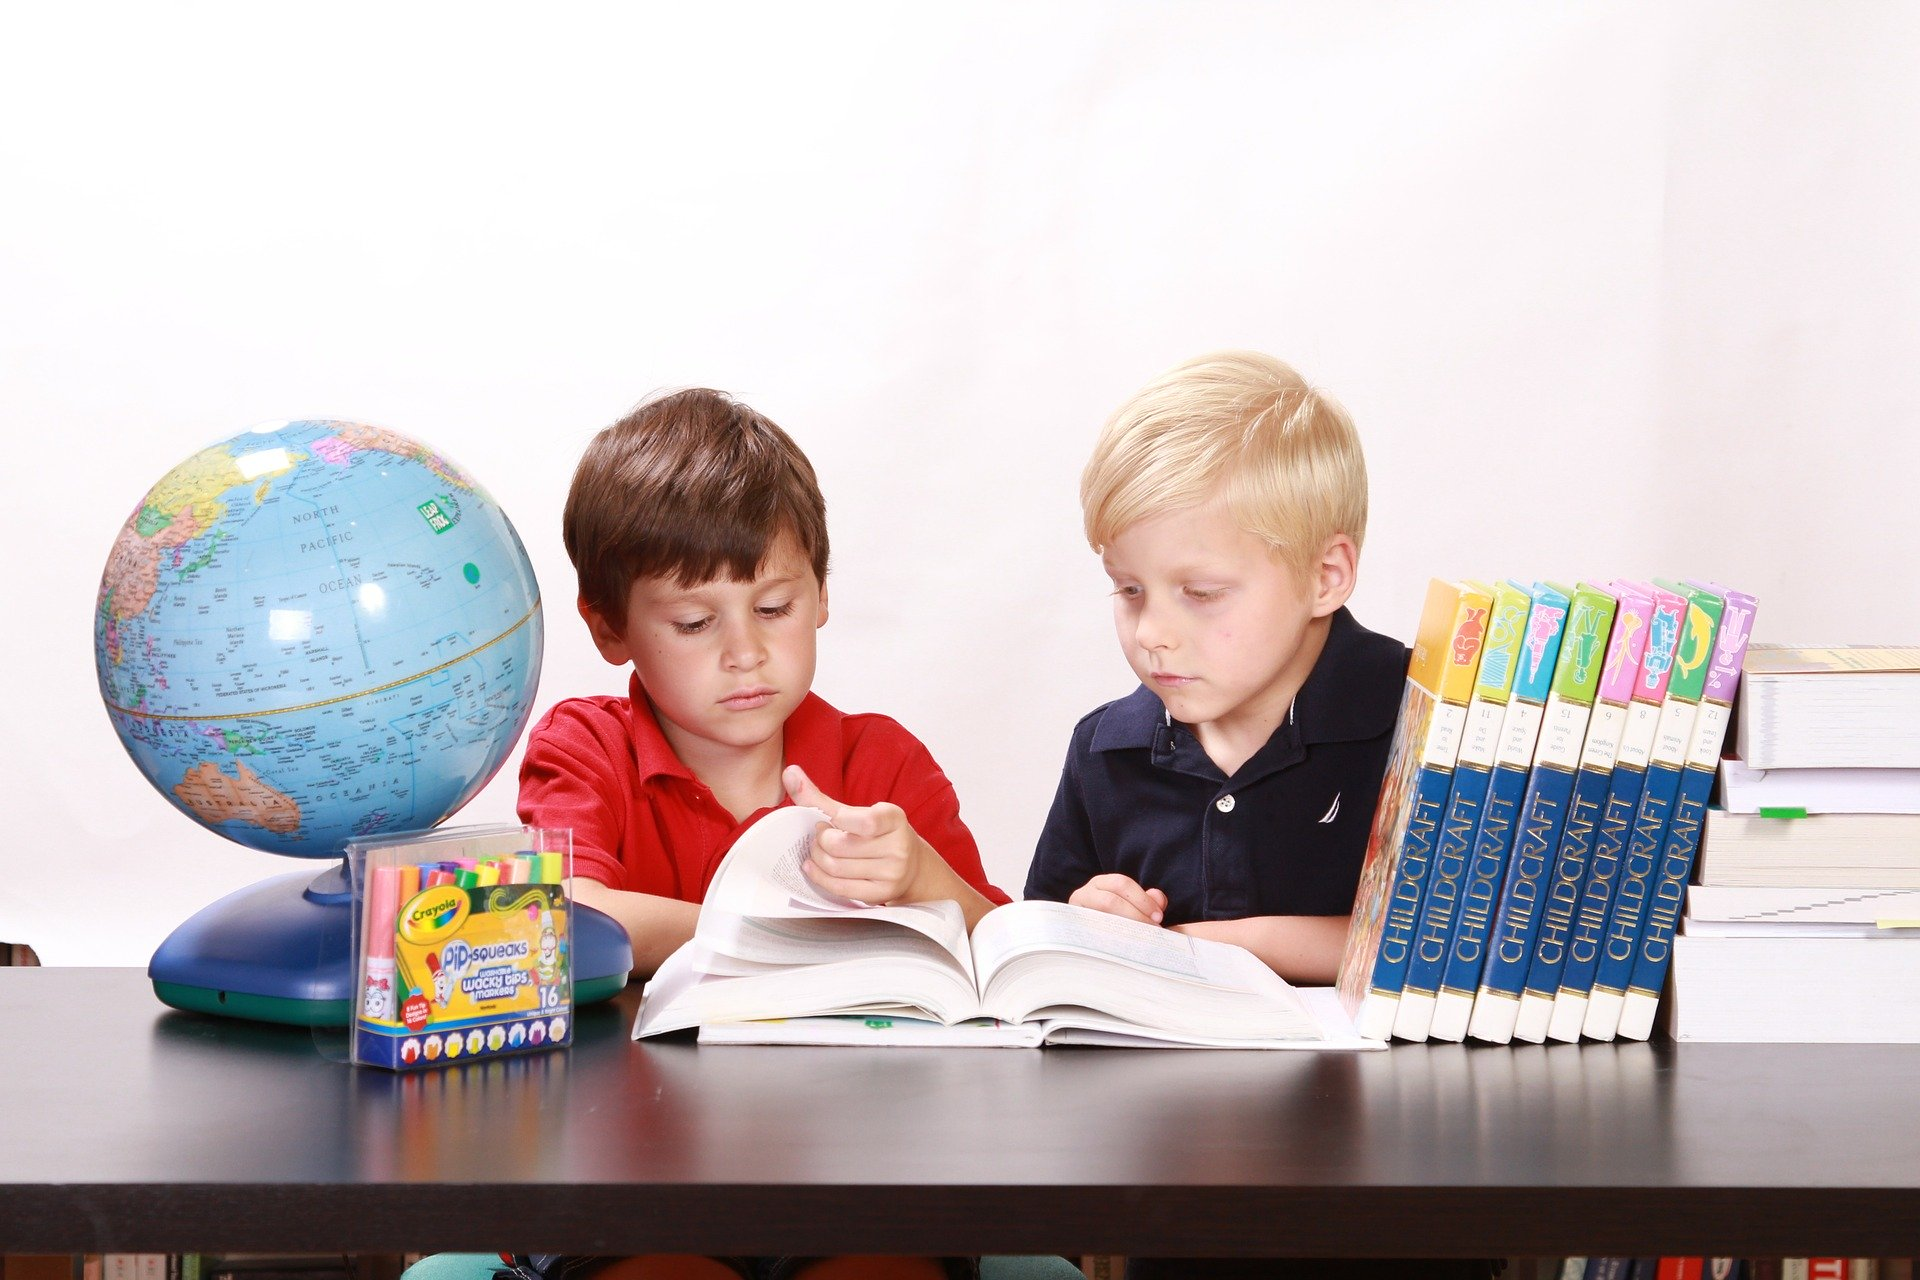 Mini-group: English A0 level  for kids (3-6 years old)